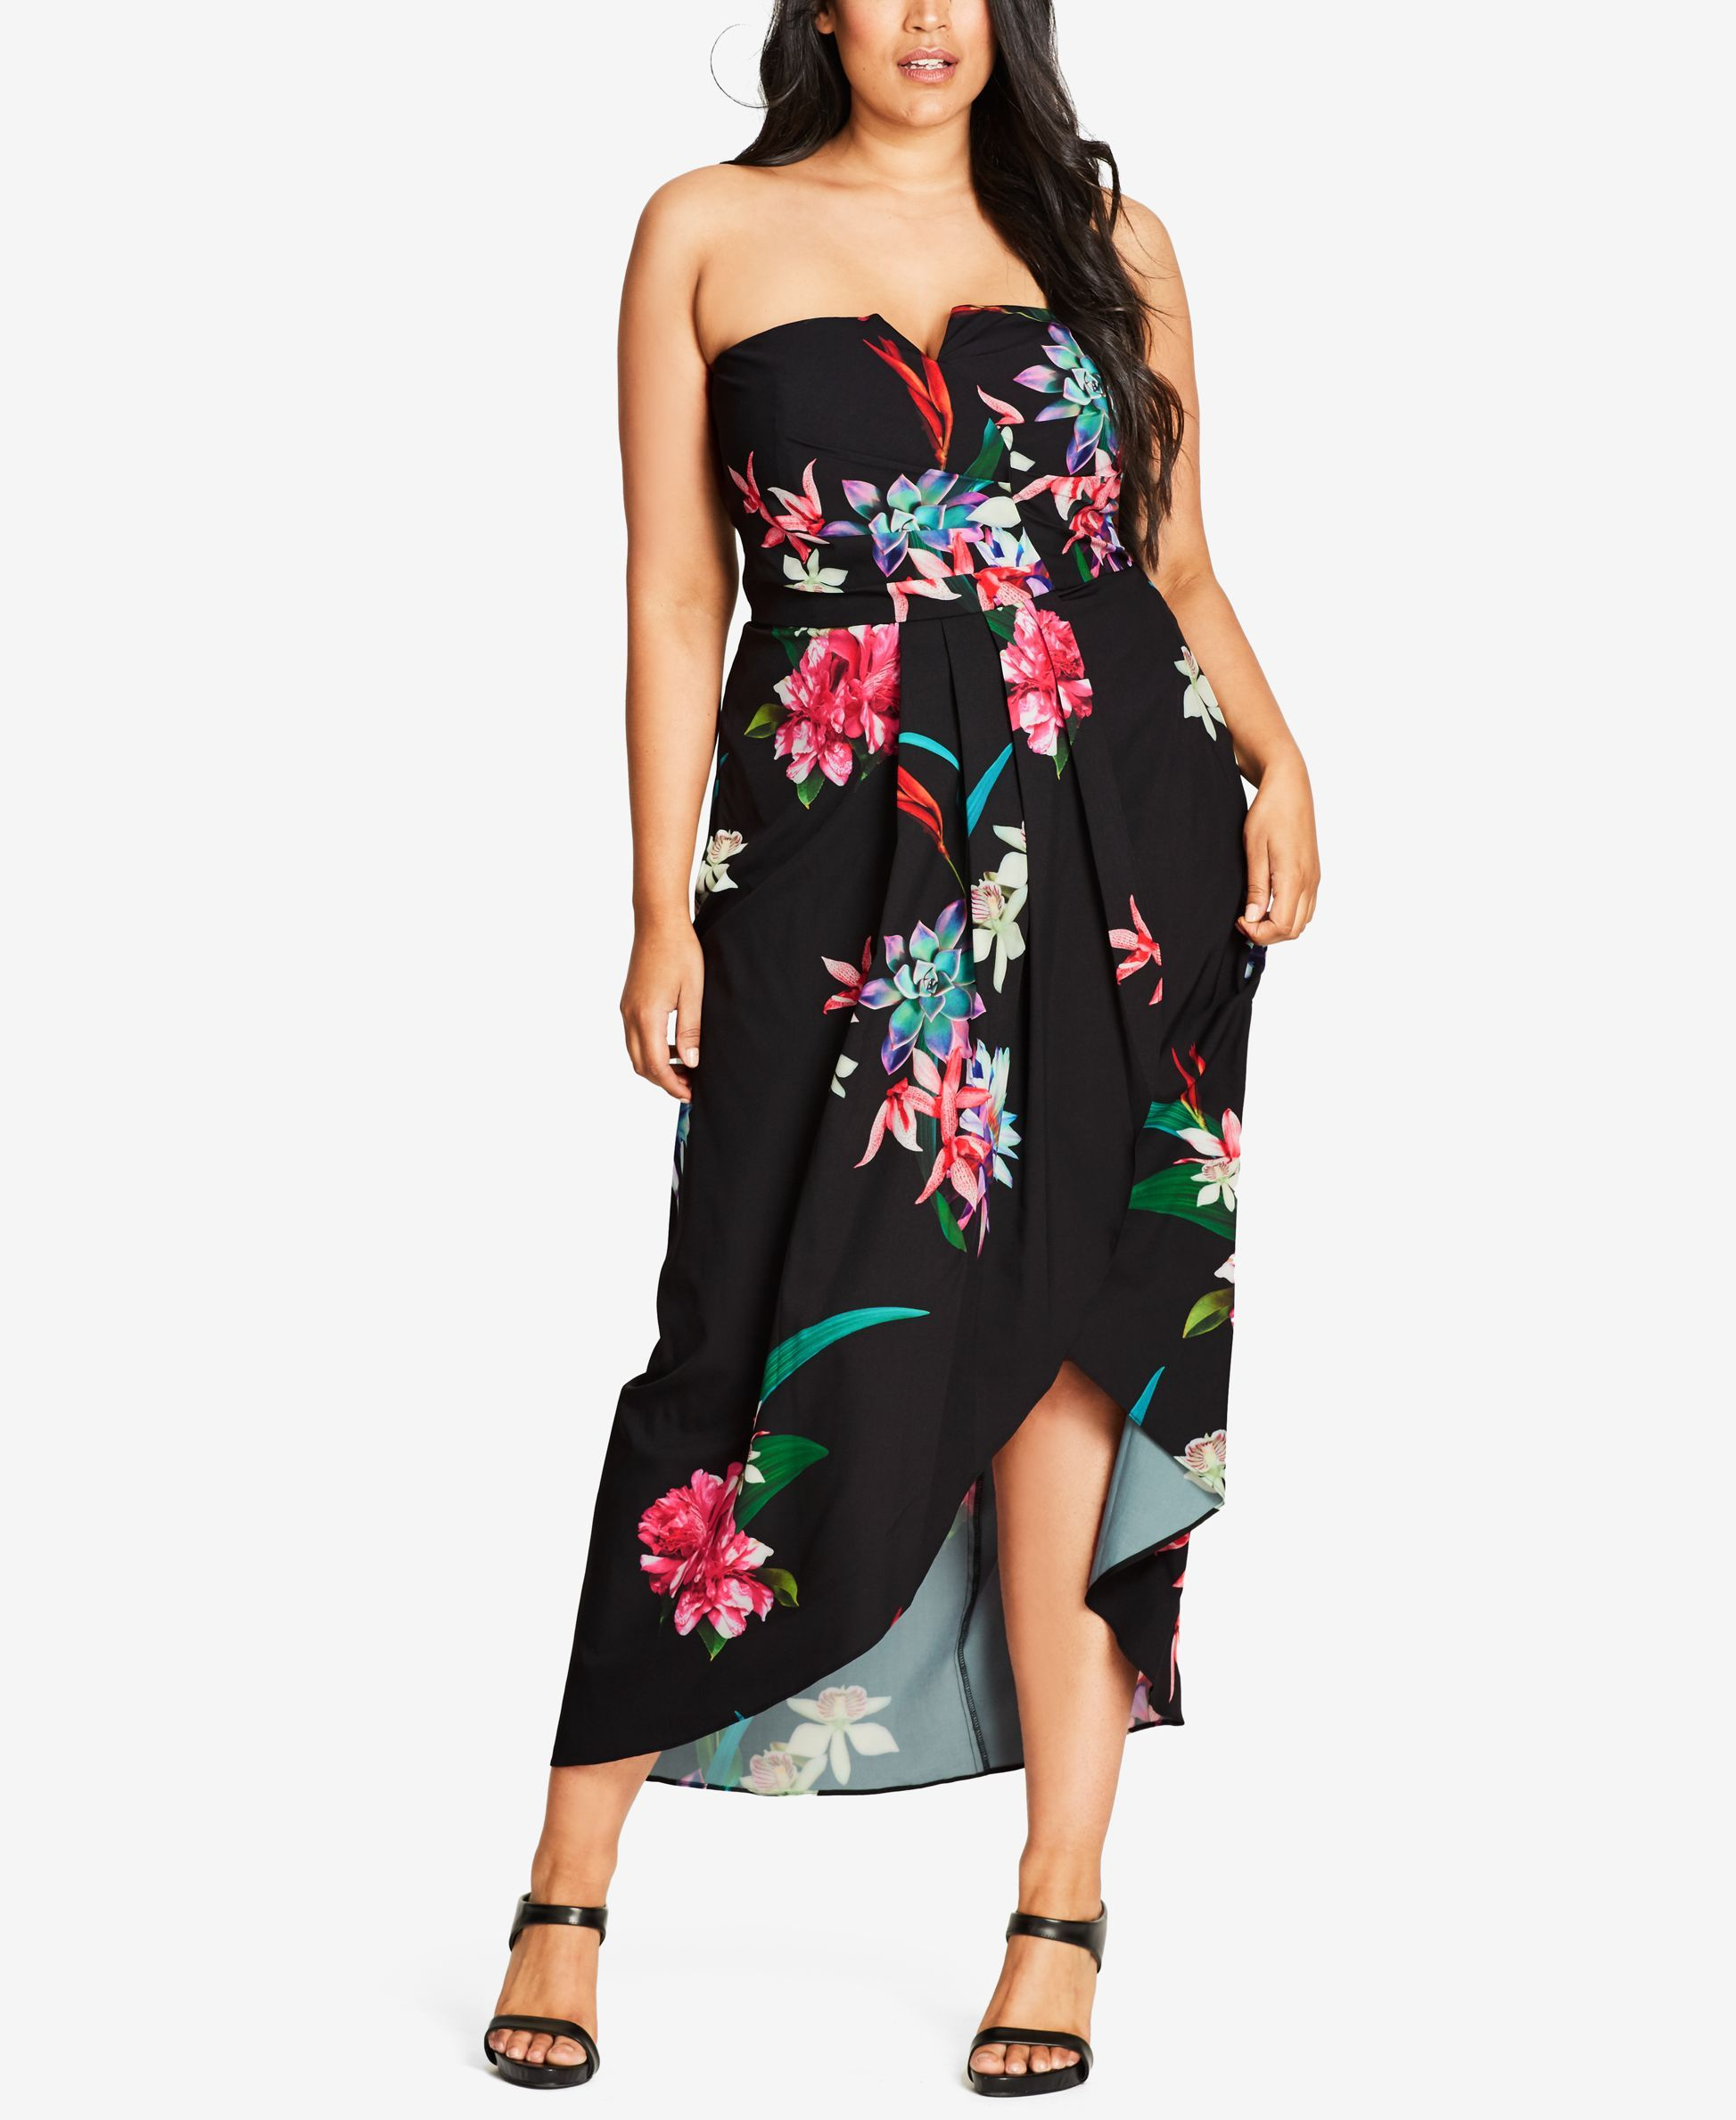 485bbd85674 City Chic Trendy Plus Size Tropical-Print Strapless Dress